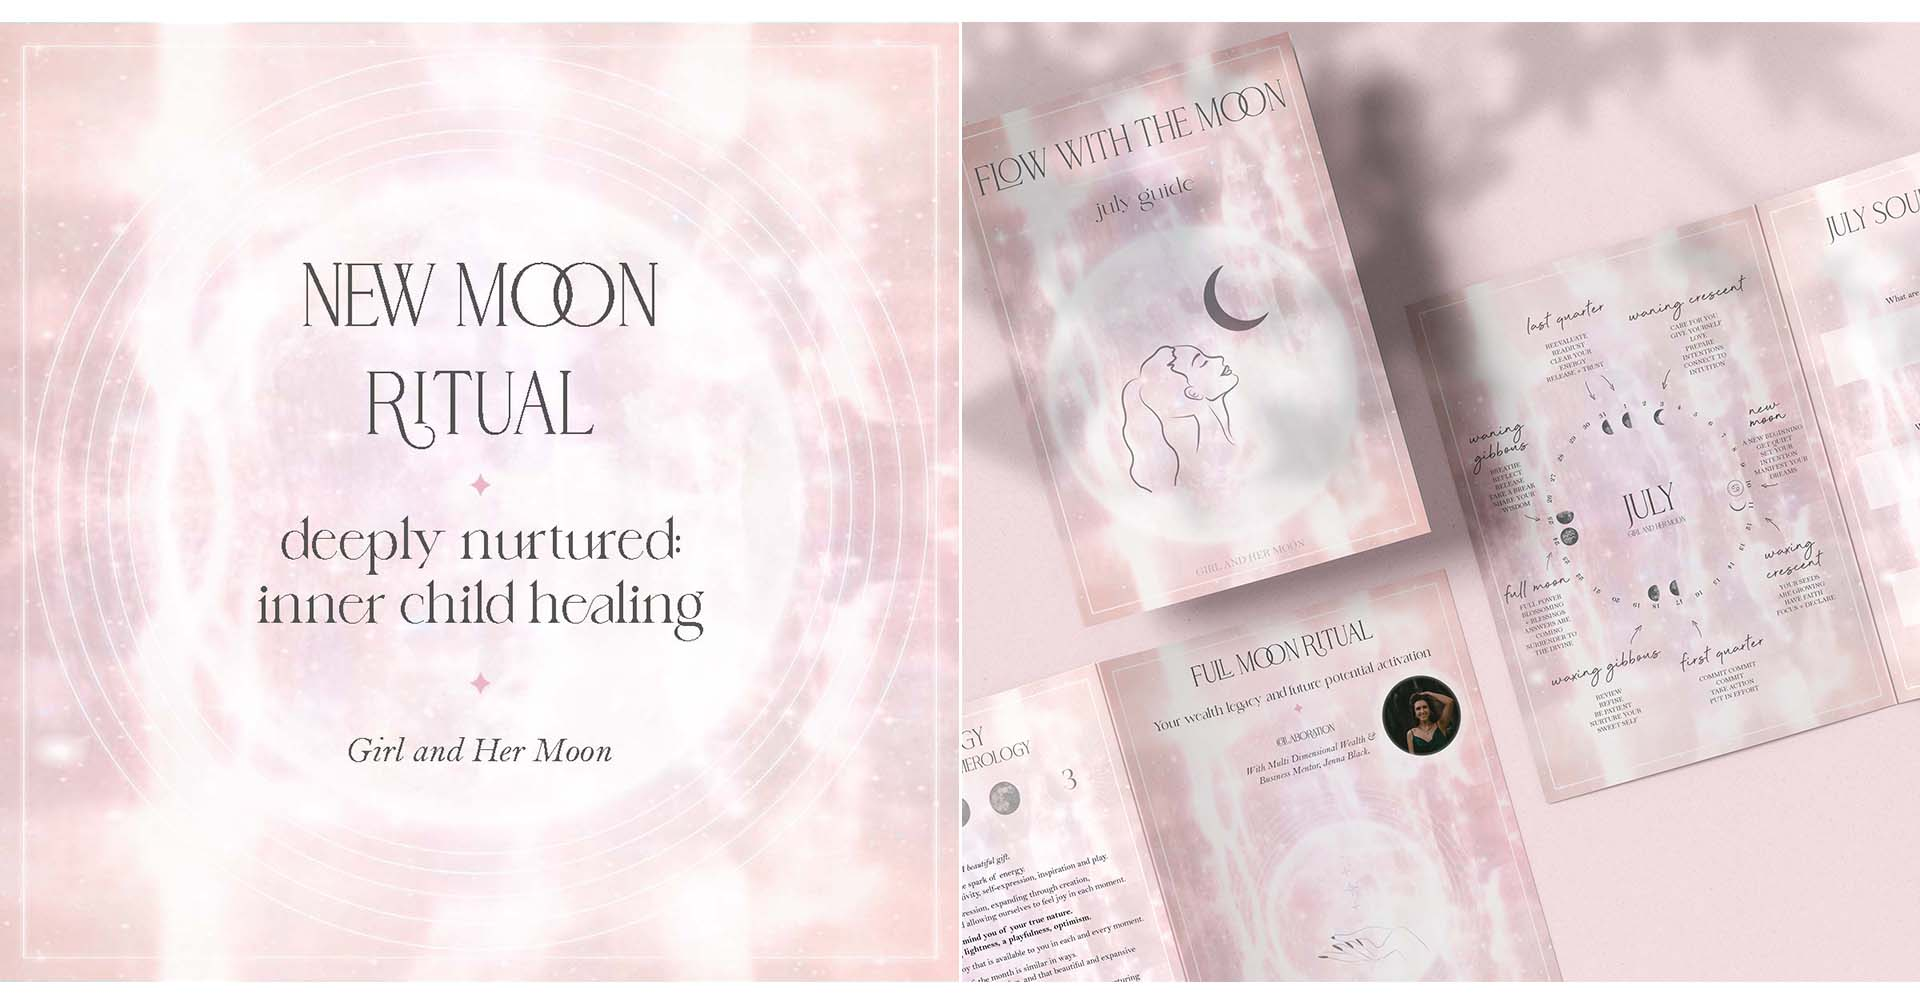 Cancer New Moon July 2021 ritual Girl and Her Moon